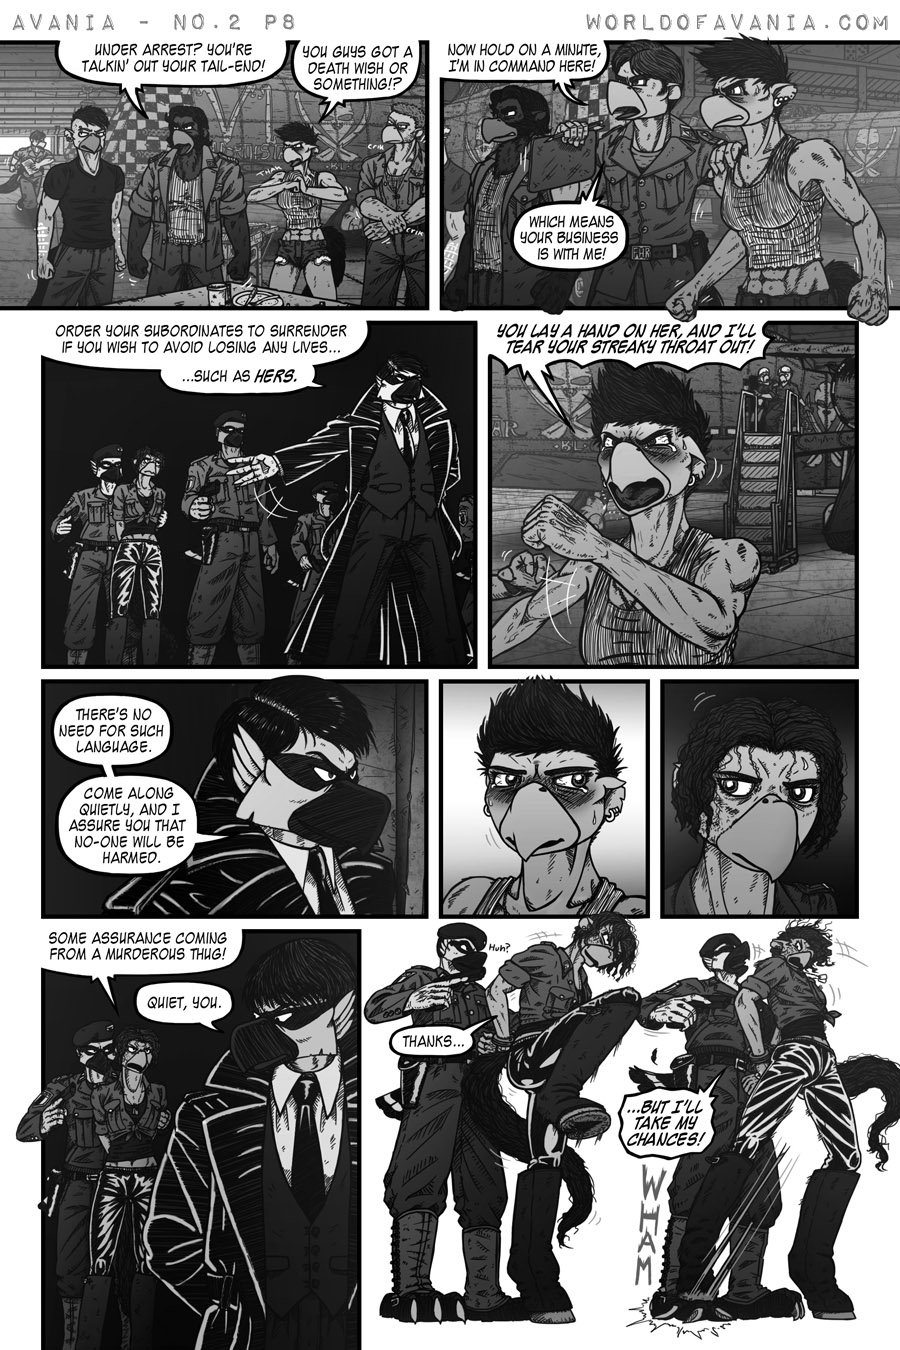 Avania Comic - Issue No.2, Page 8